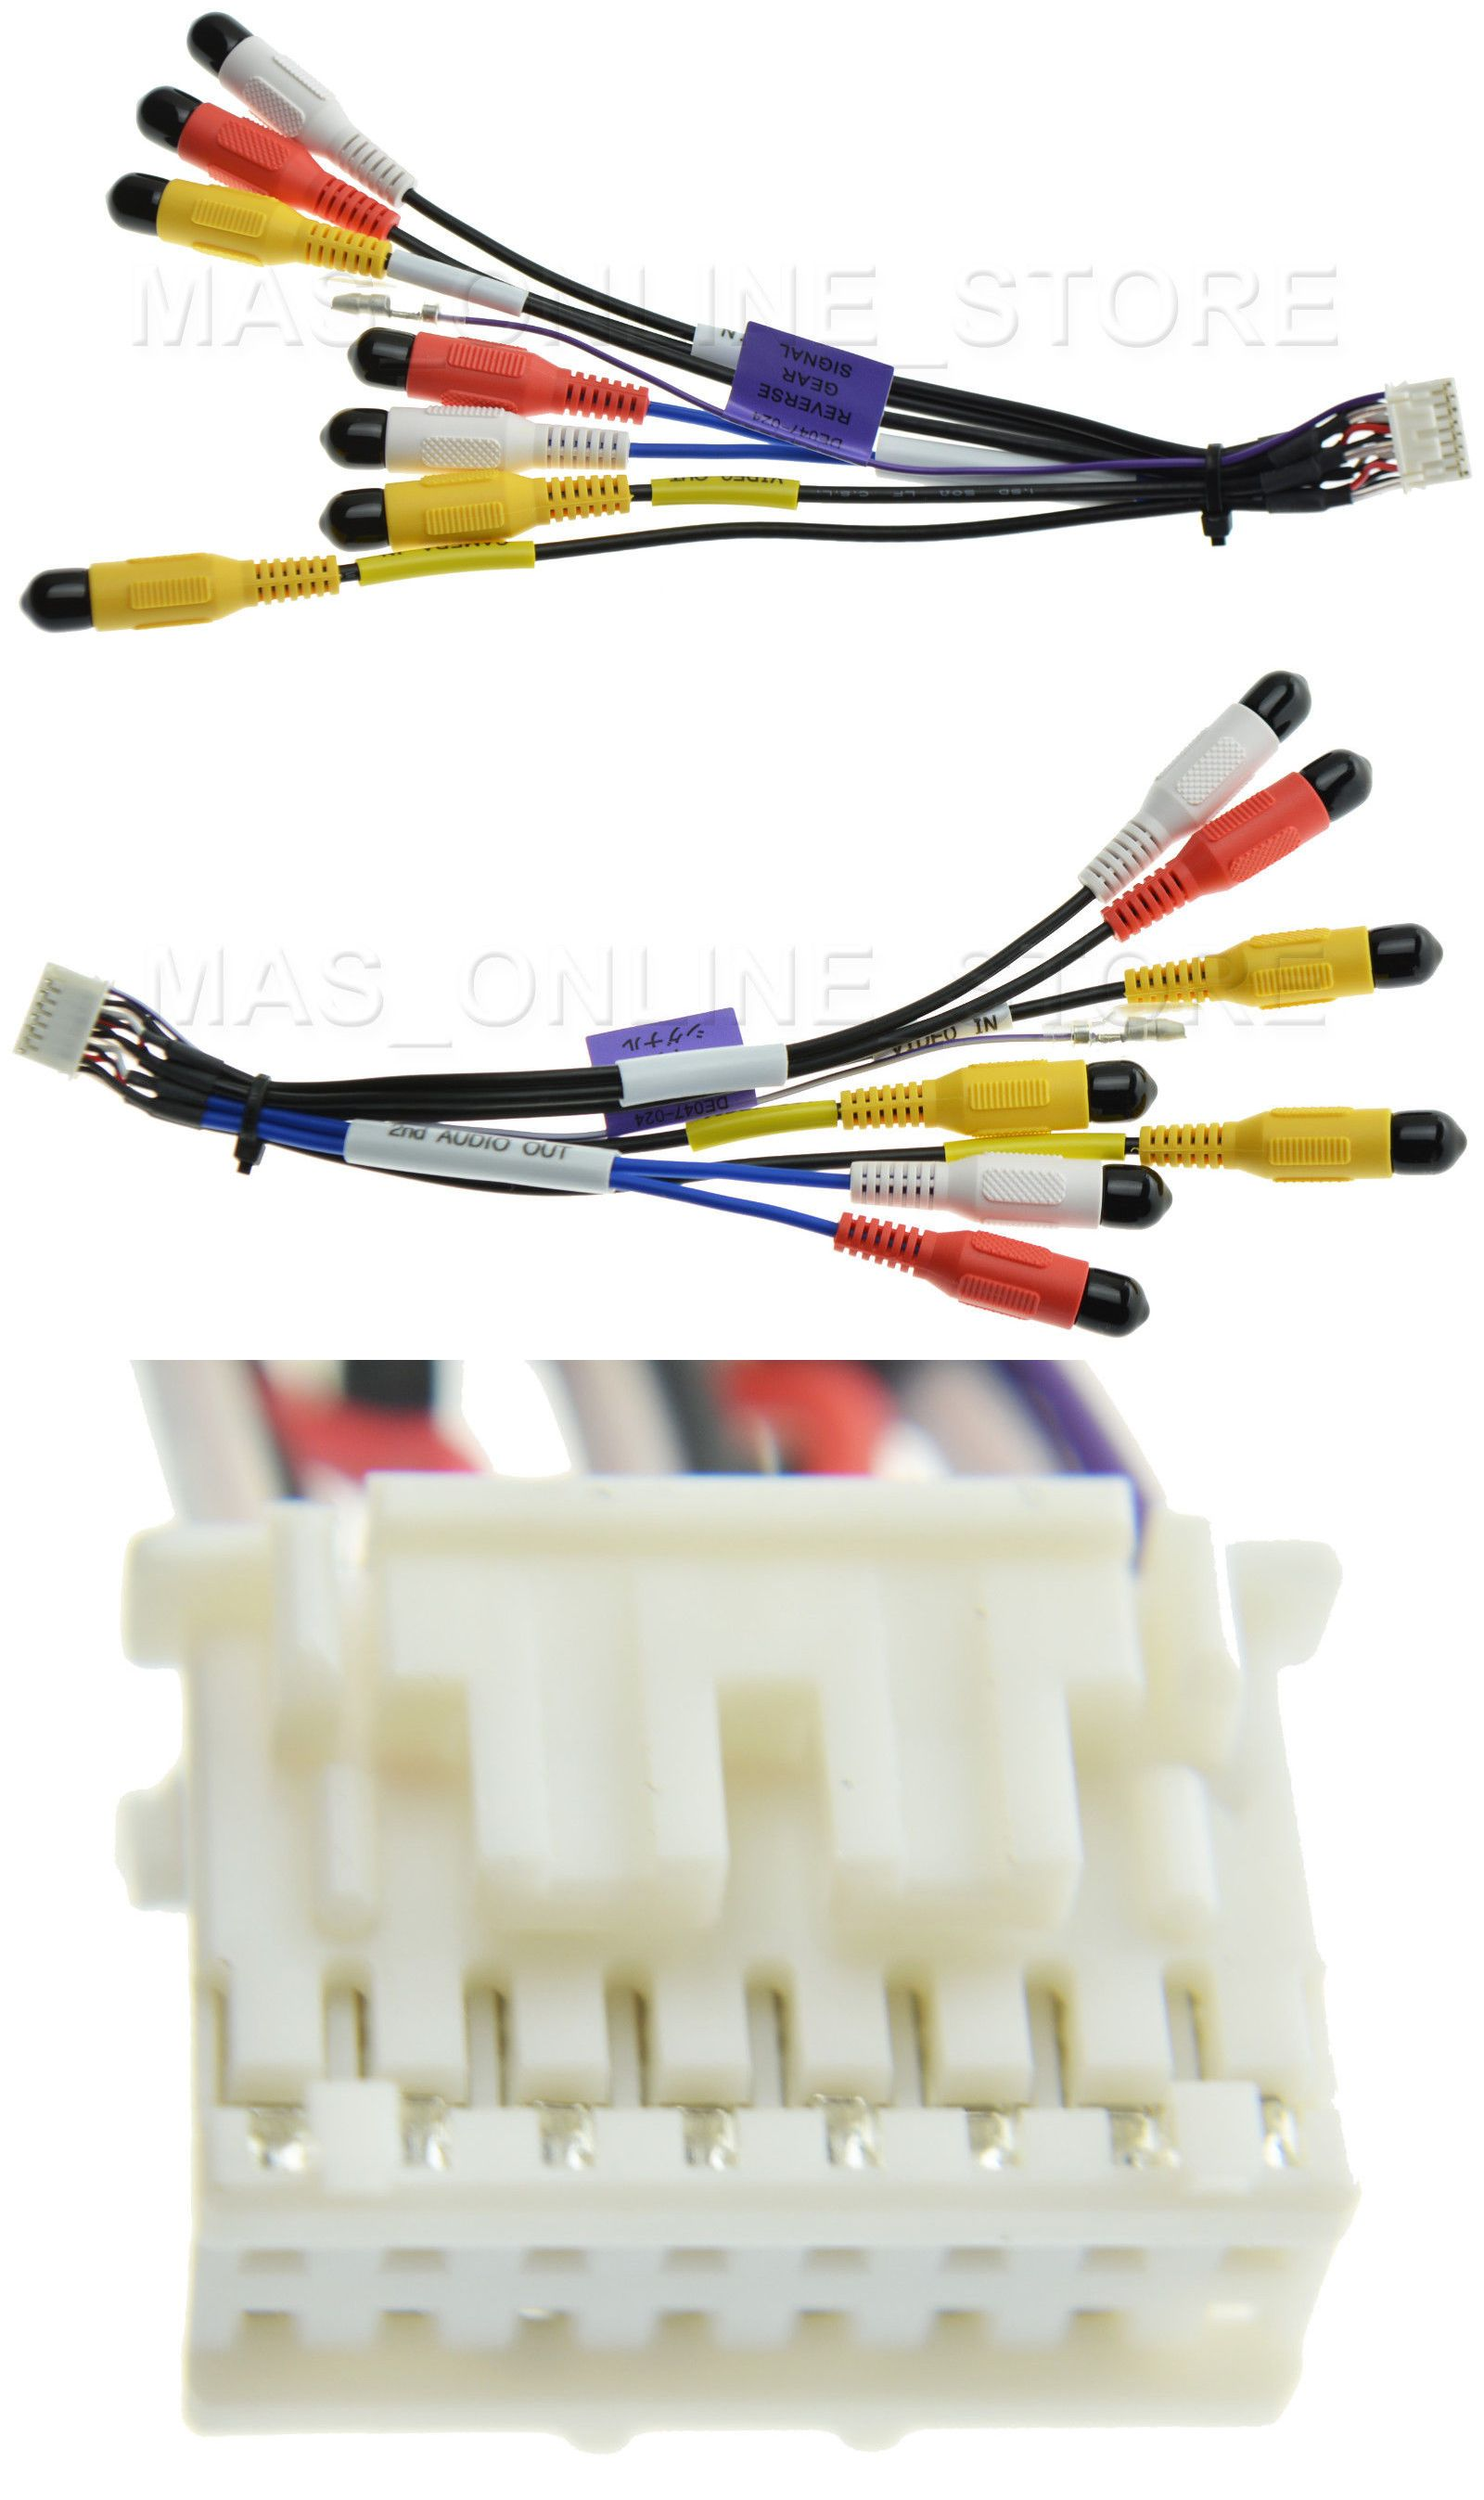 32616e099cd0138ff367aff58f82c96d interconnect cables jvc kw avx800 kwavx800 genuine av video in jvc kw-avx800 wiring harness at virtualis.co